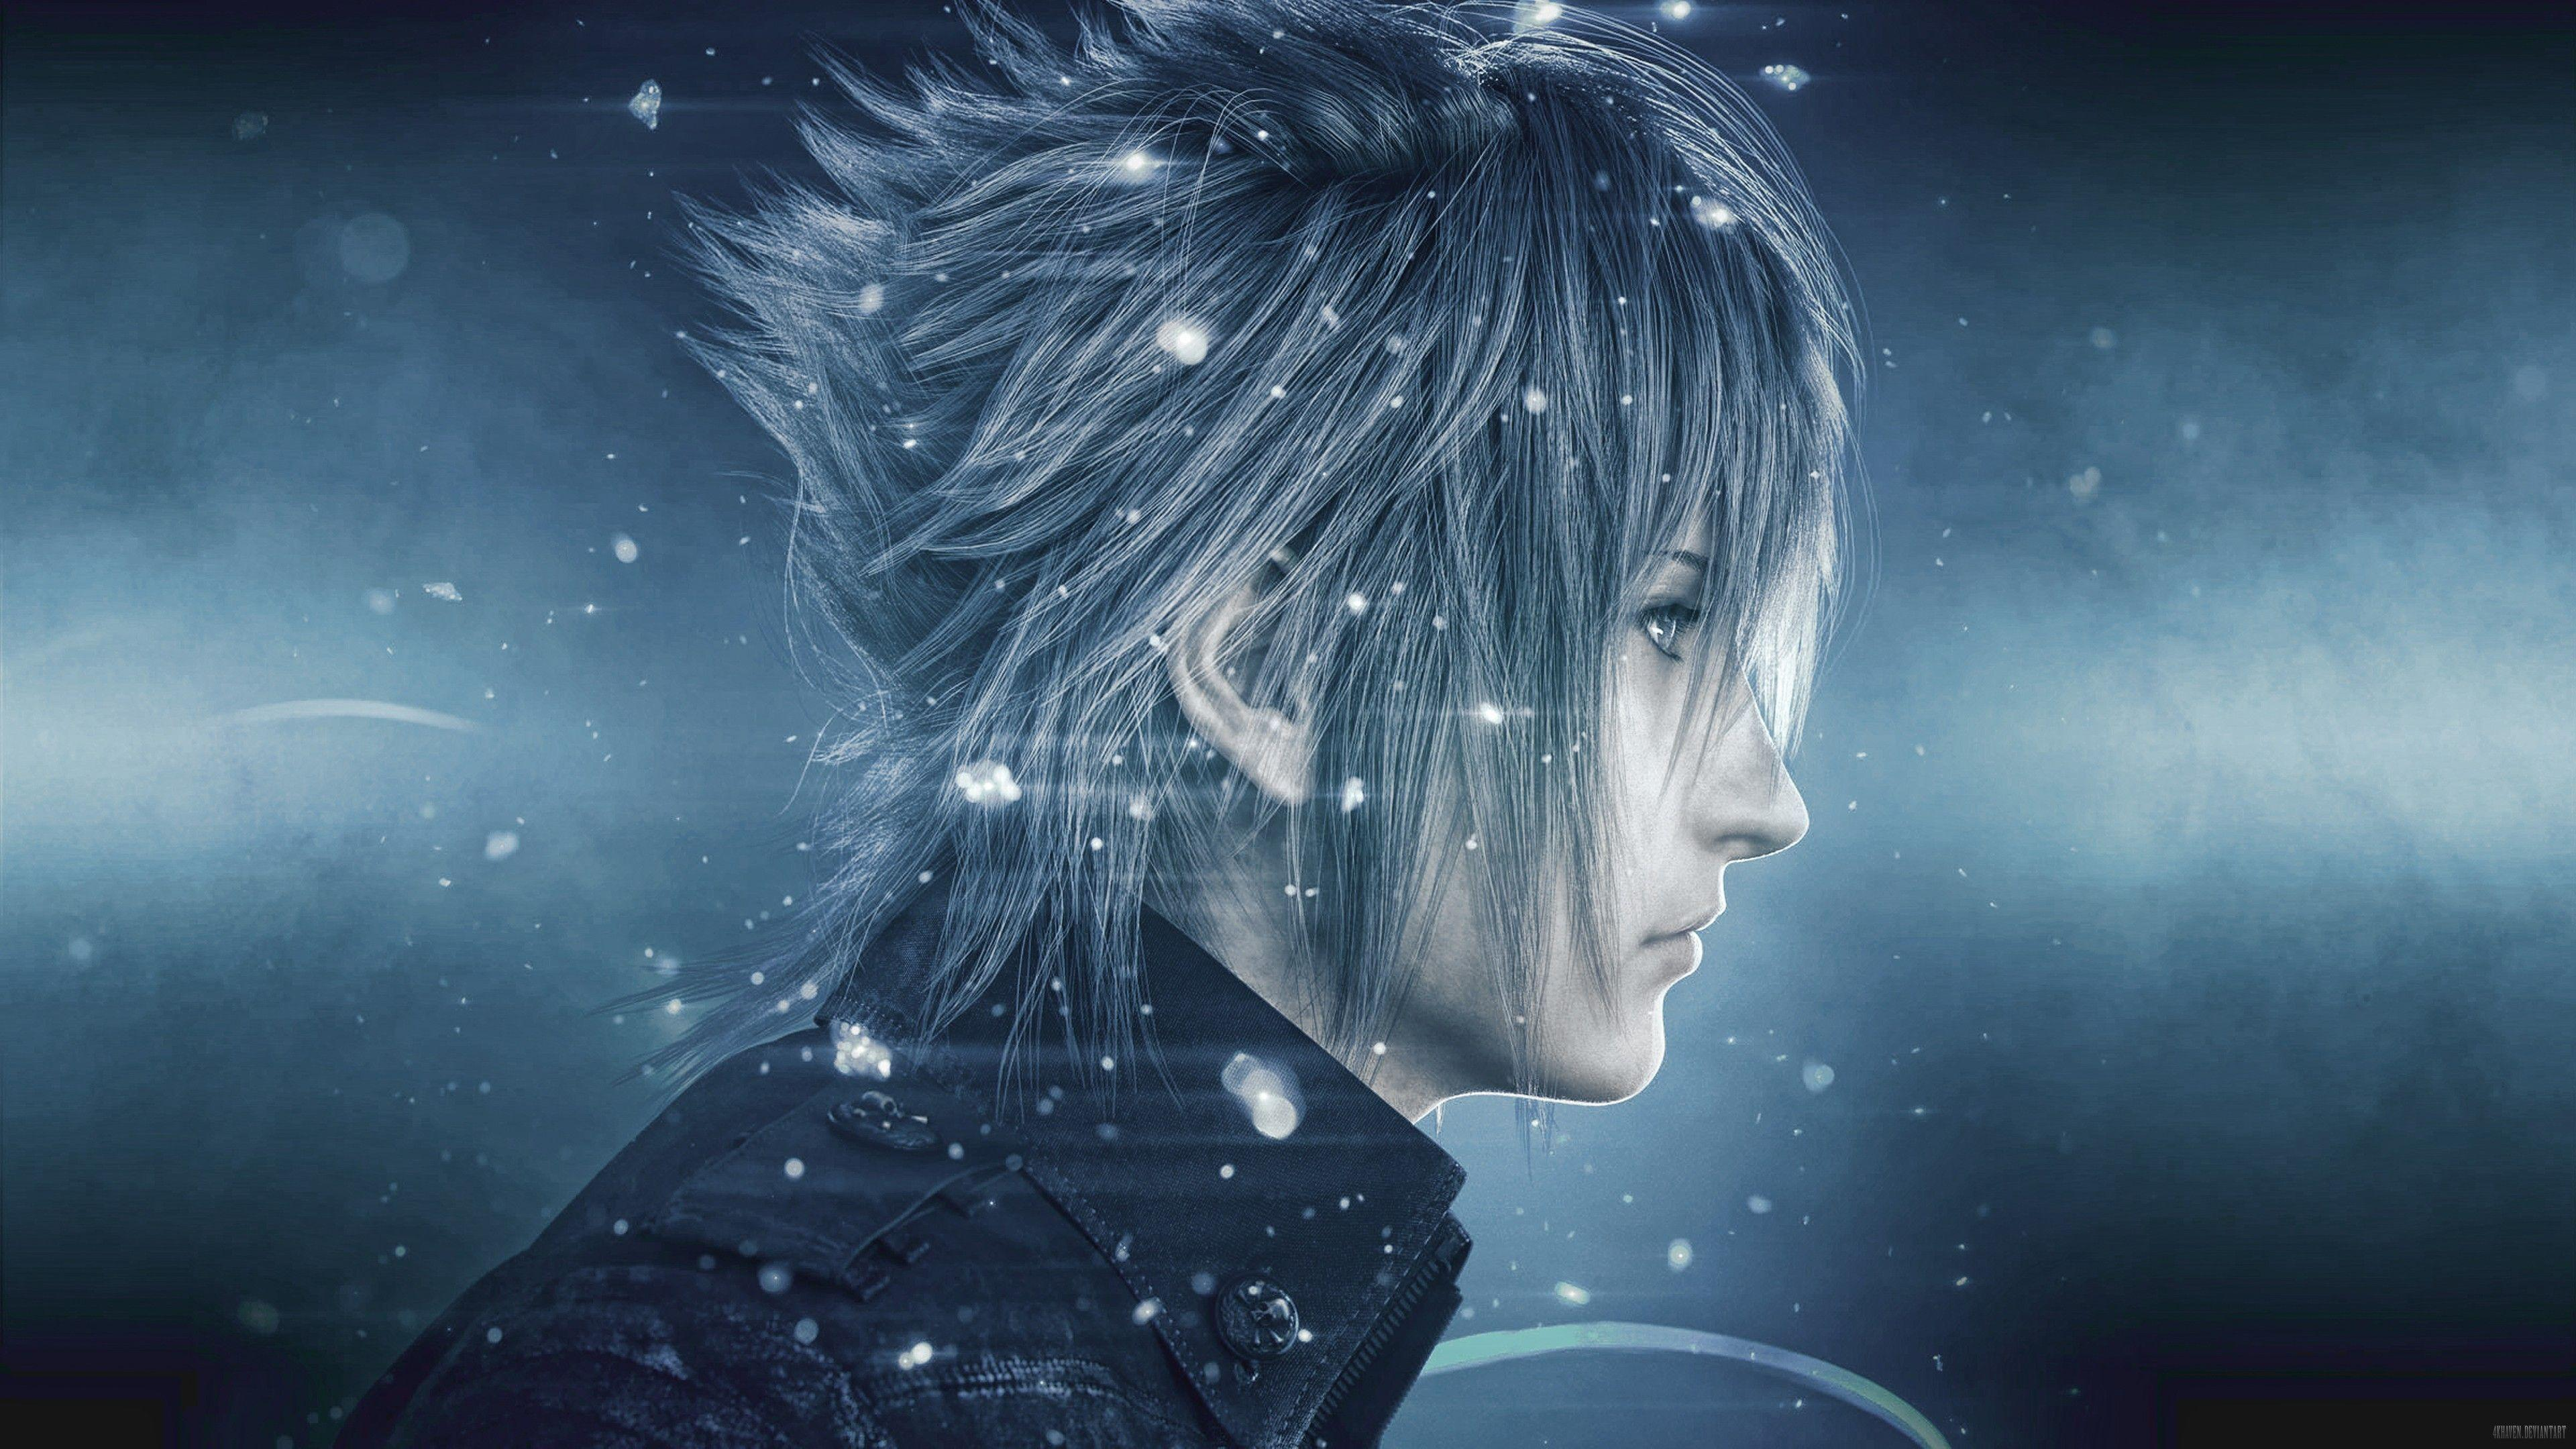 Final Fantasy Wallpapers 87 Background Pictures: Final Fantasy XV Wallpapers